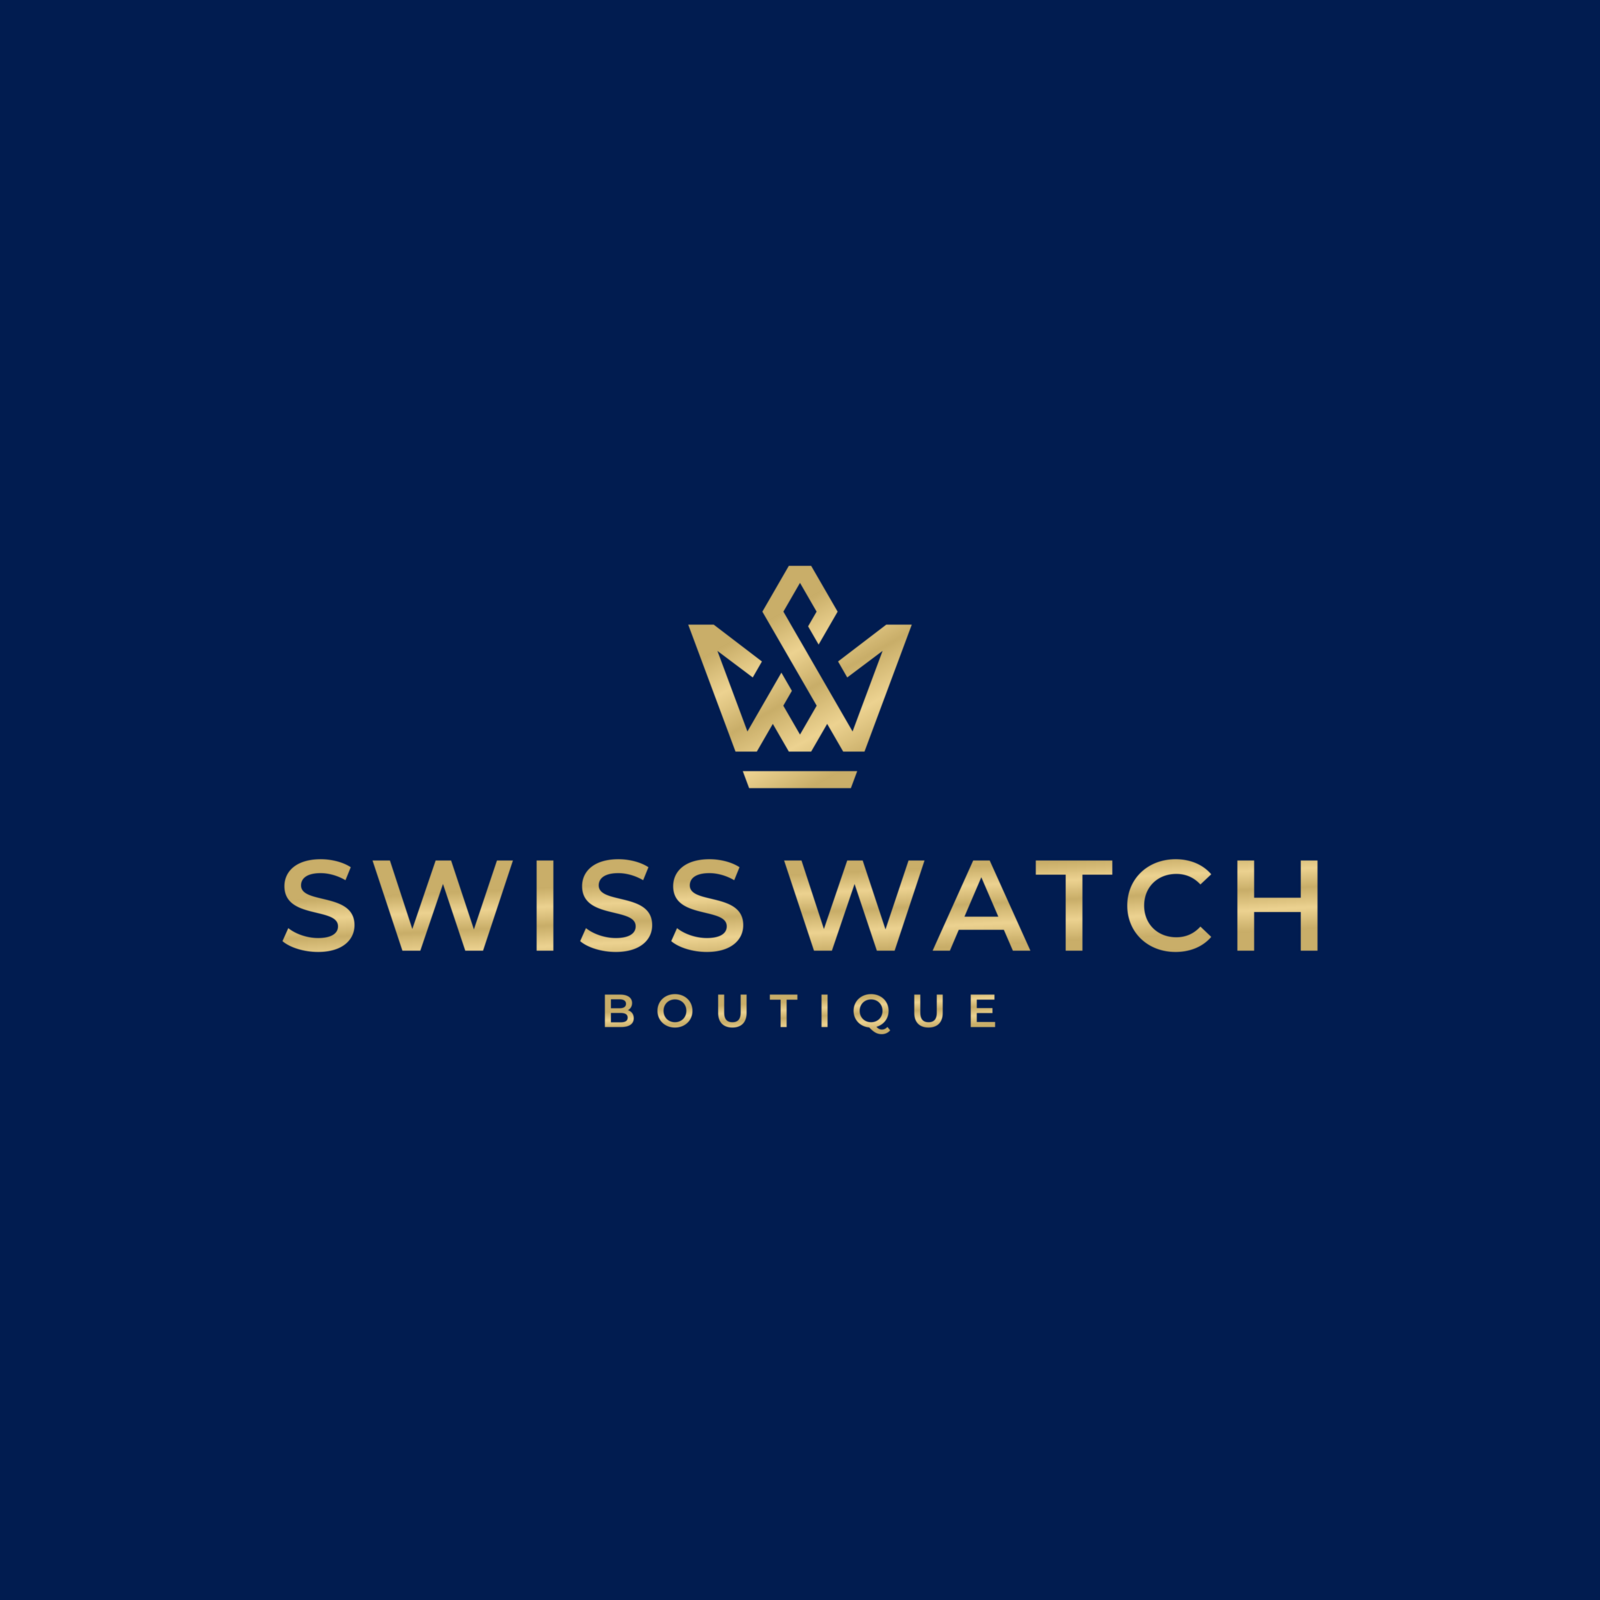 SWISS WATCH 2 PNG